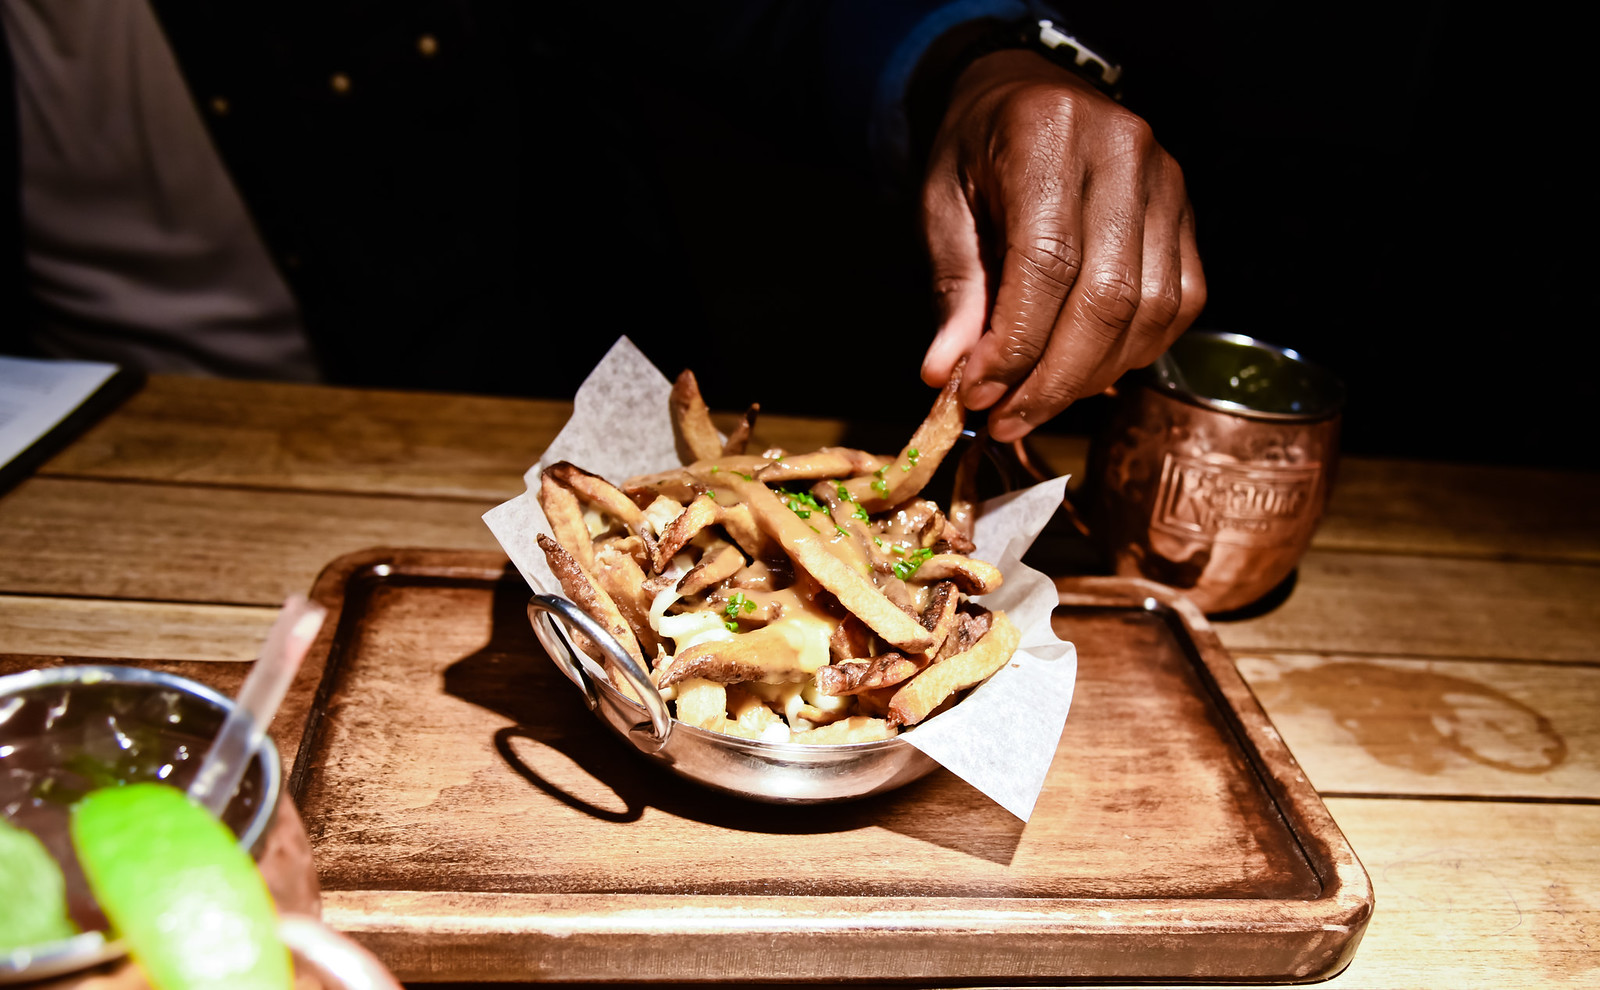 moxie's grill and bar poutine